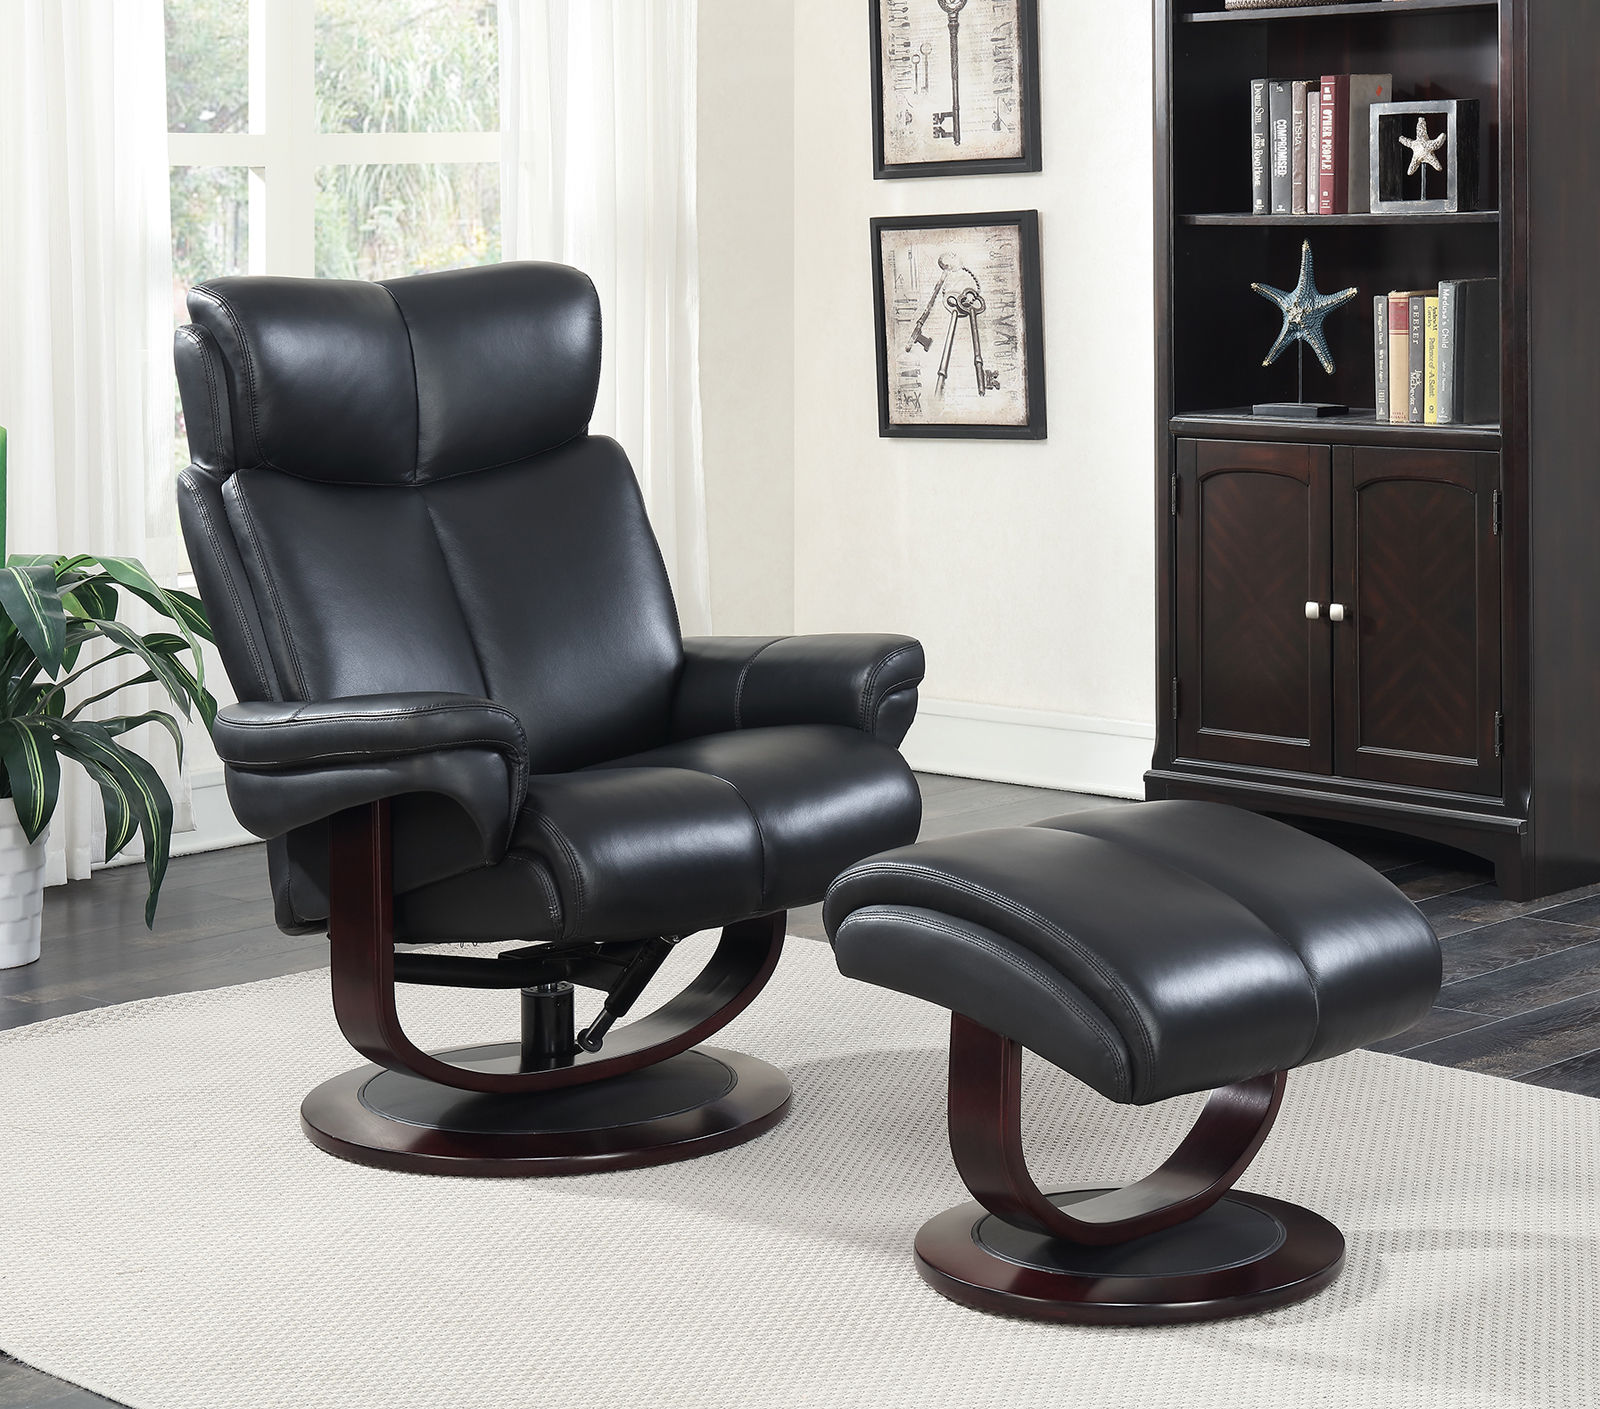 Incredible Barcalounger Brynn Hilton Black Pedestal Recliner And Andrewgaddart Wooden Chair Designs For Living Room Andrewgaddartcom